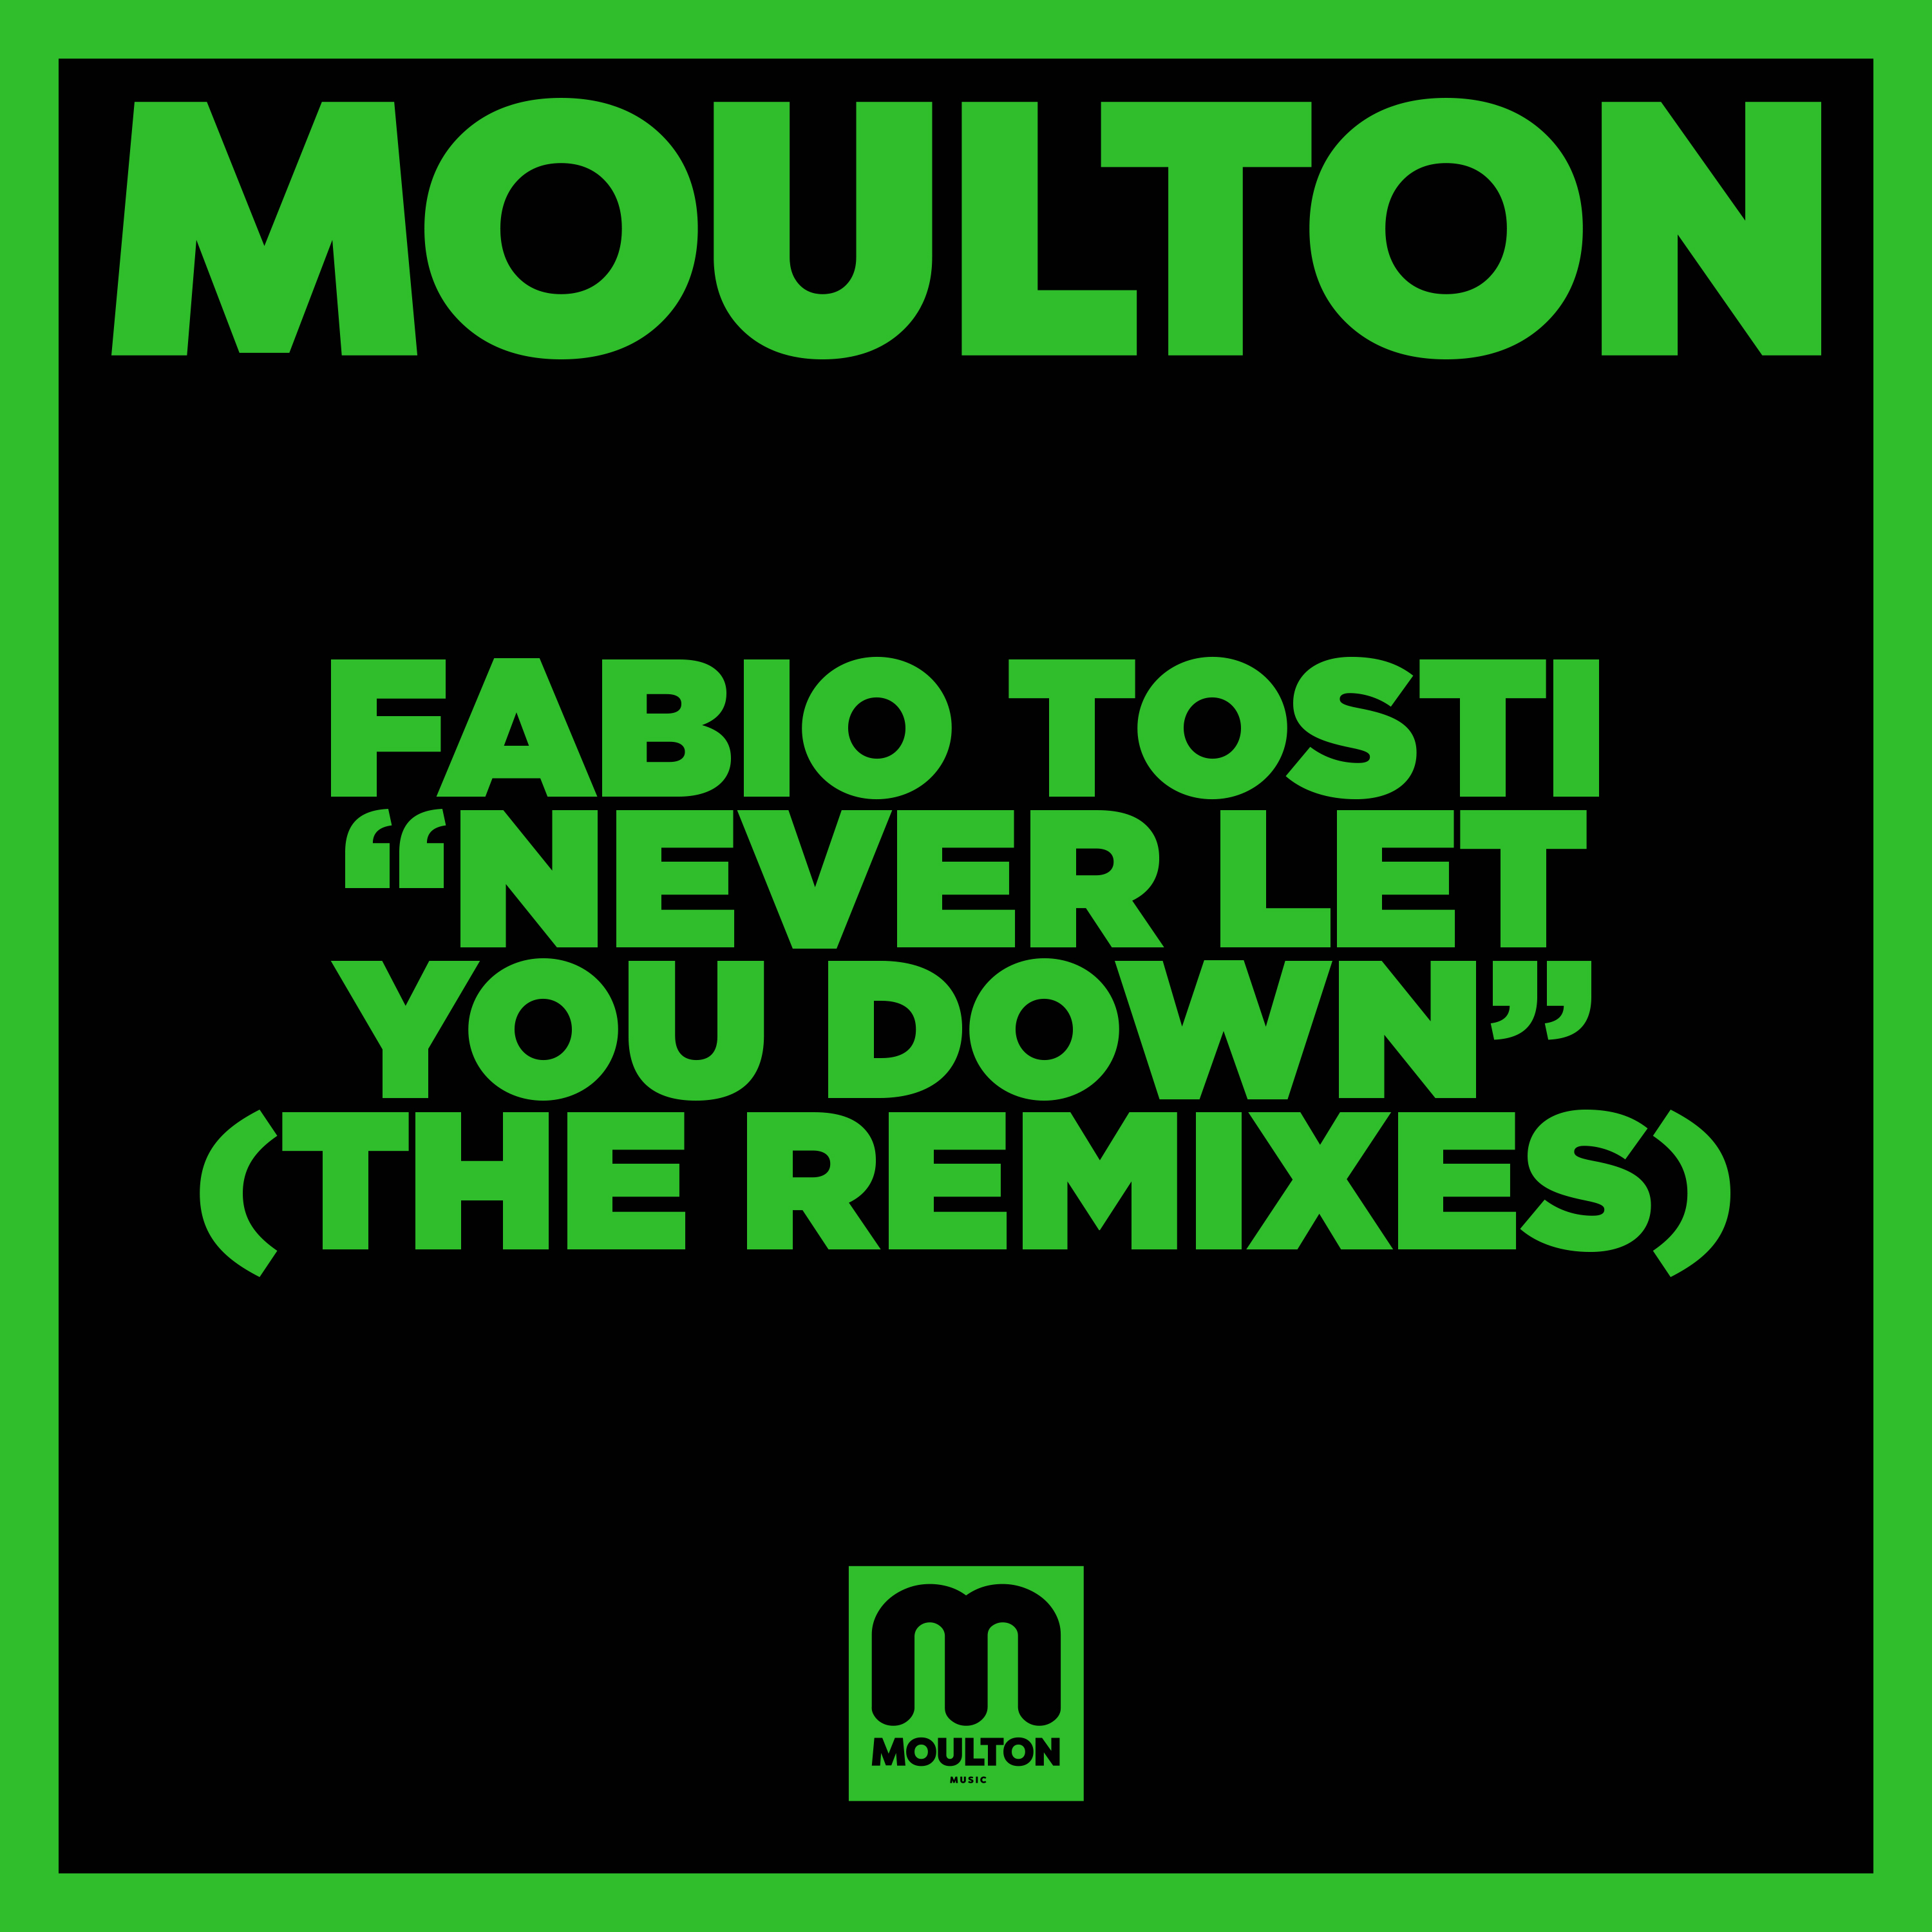 fabio-tostinever-let-you-down-remix